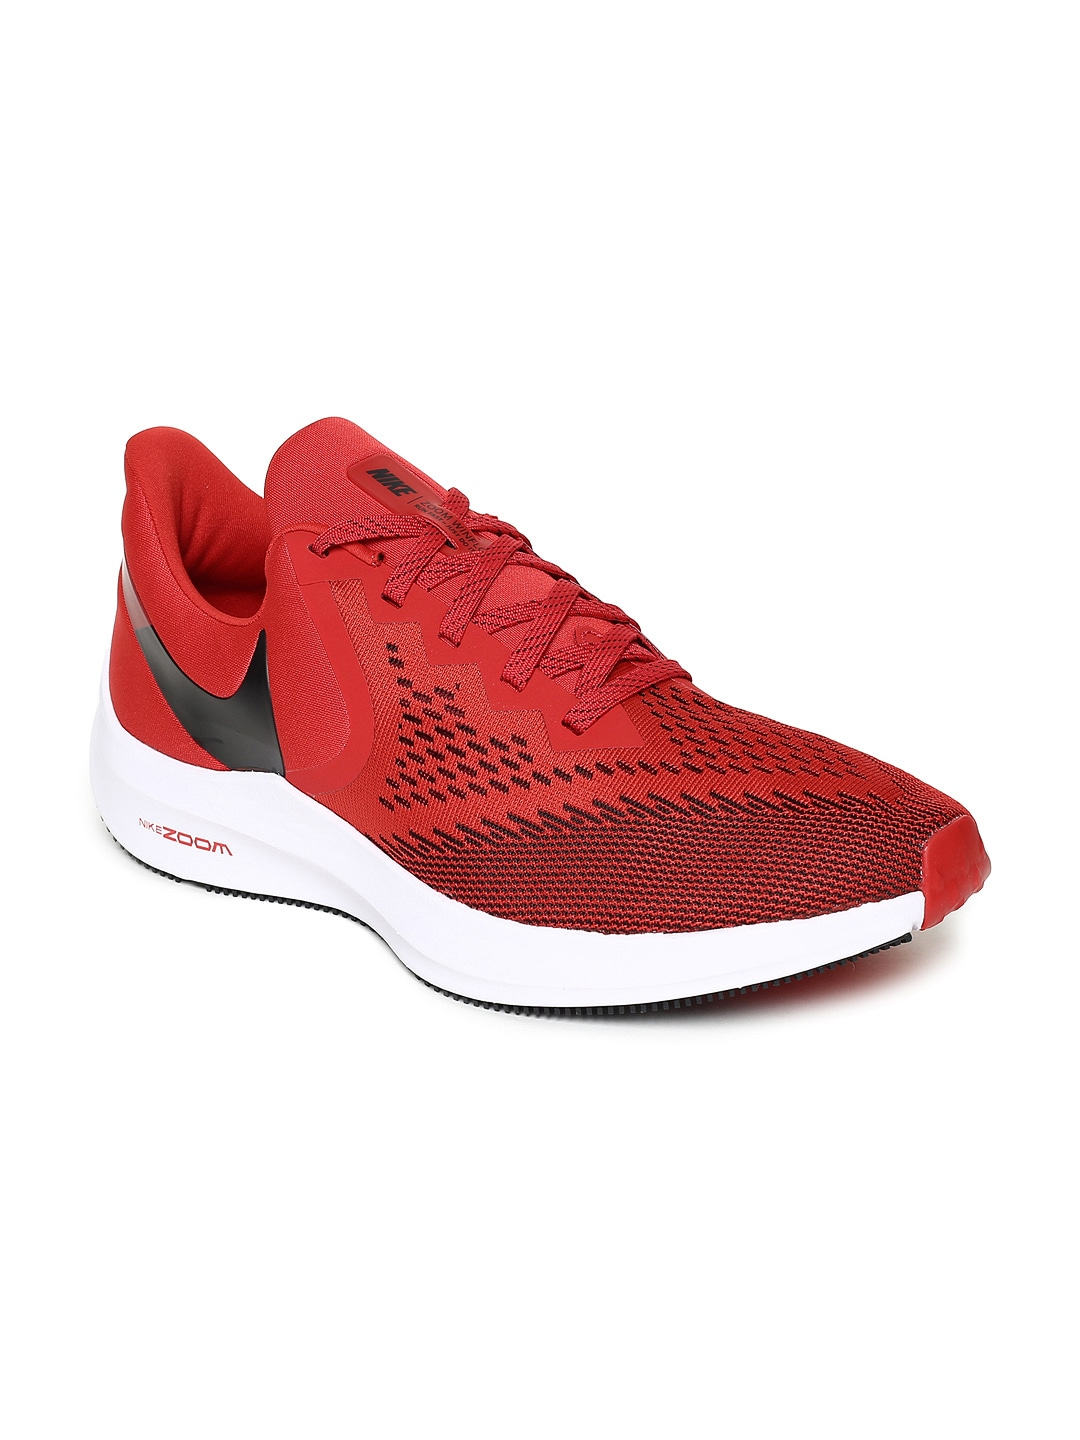 41004ca34754 Nike Zoom Sports Shoes - Buy Nike Zoom Sports Shoes online in India